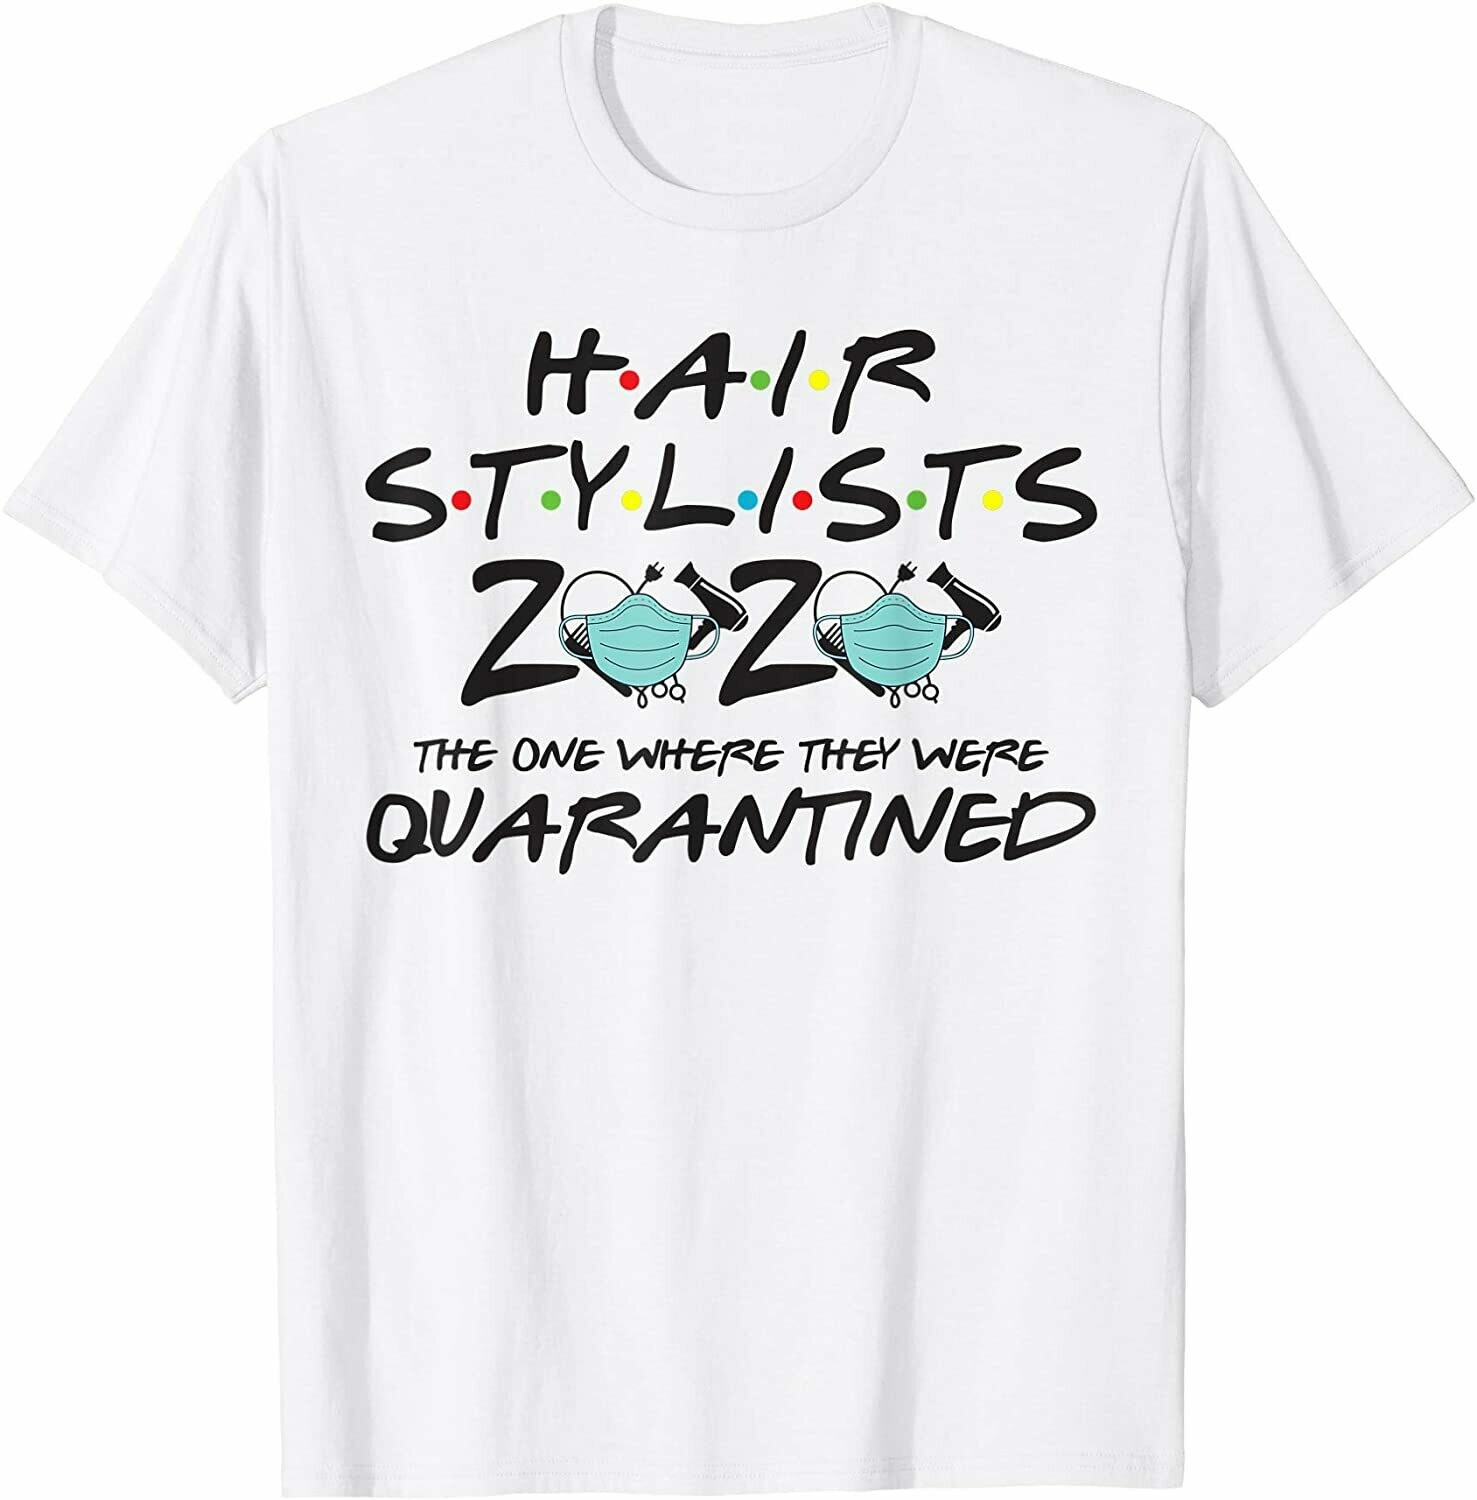 Hairstylist 2020 The One Where They Were Quarantined T Shirt Unisex Shirt Short-Sleeve Long-Sleeve V-Neck Tank Pullover Hoodie Sweatshirt Men Women Tee Gifts